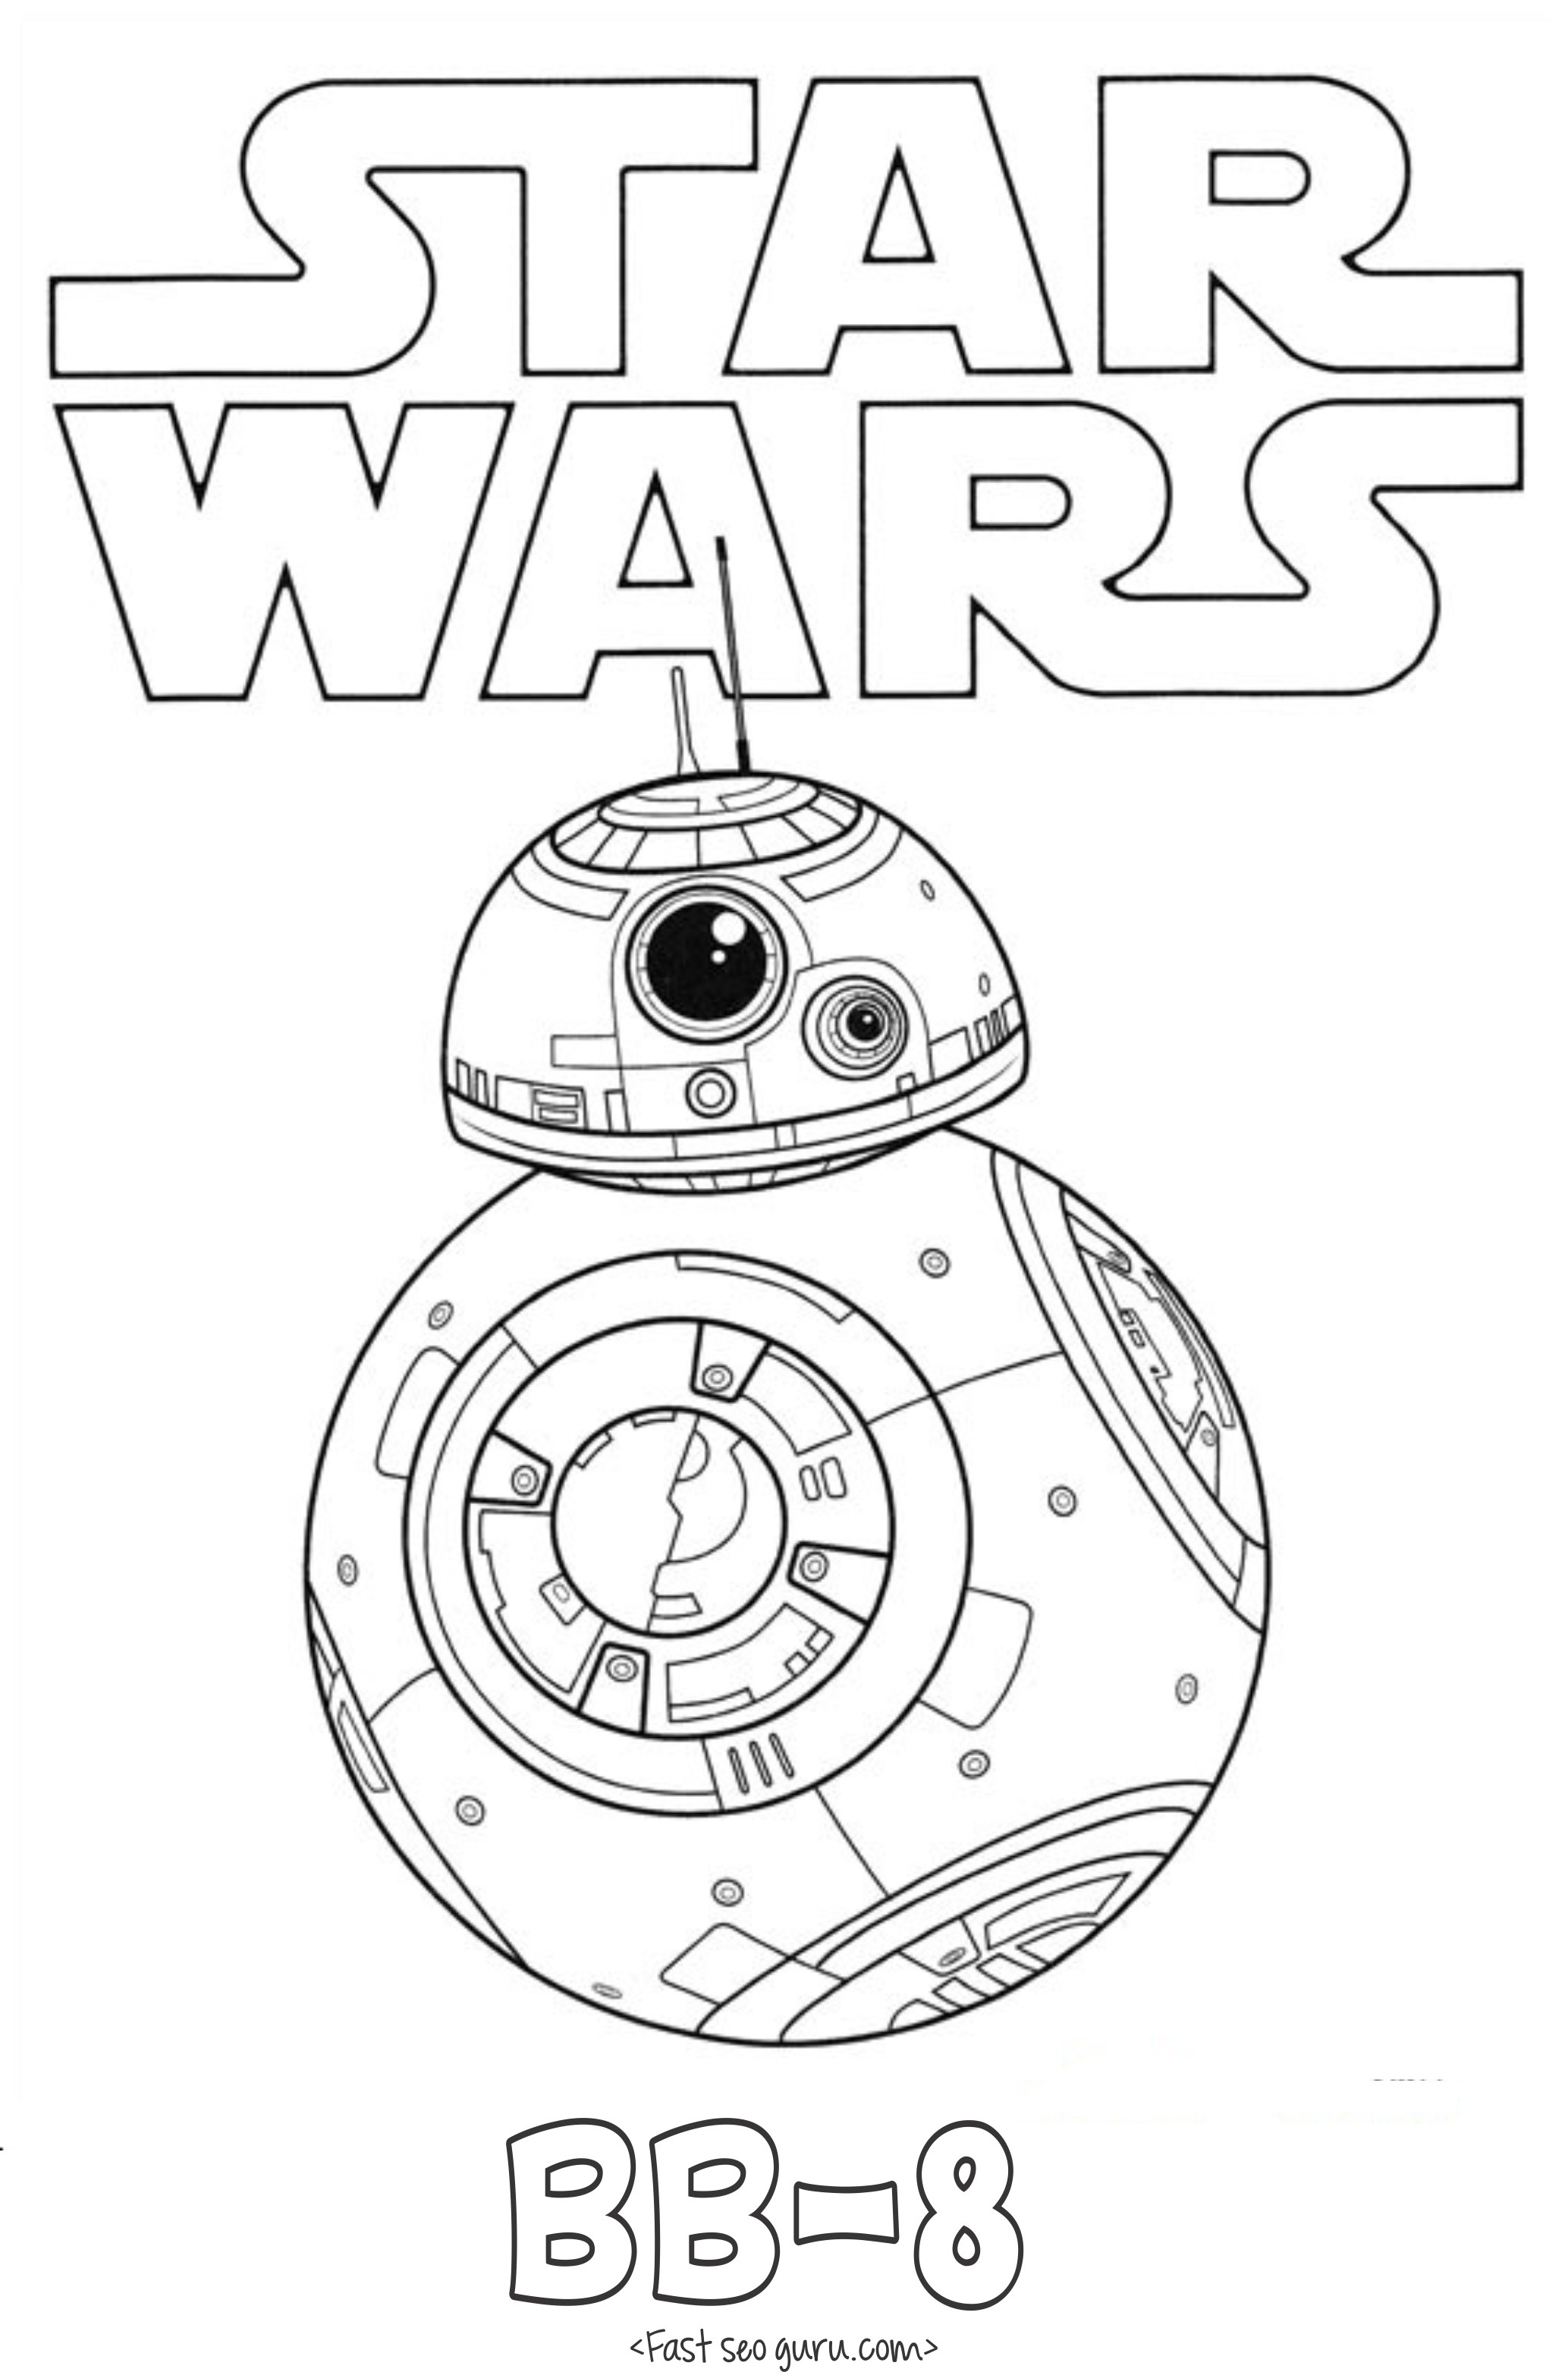 death star coloring sheet death star coloring page simple coloring pages death coloring star sheet